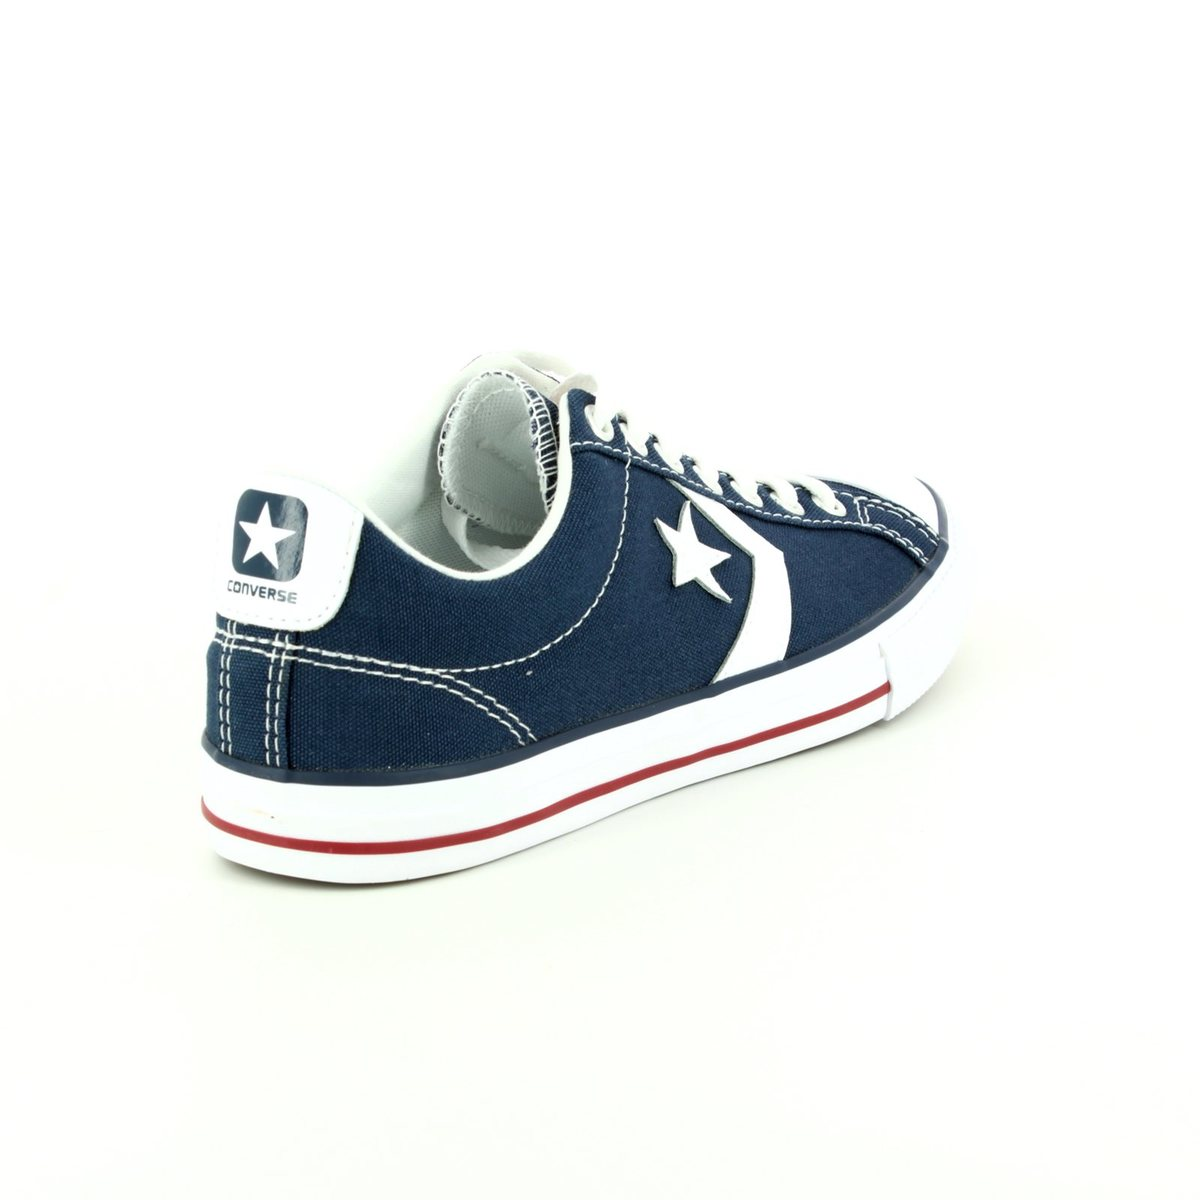 830575db09cab3 Converse Trainers - Navy - 636930C Star Player EV OX Youth